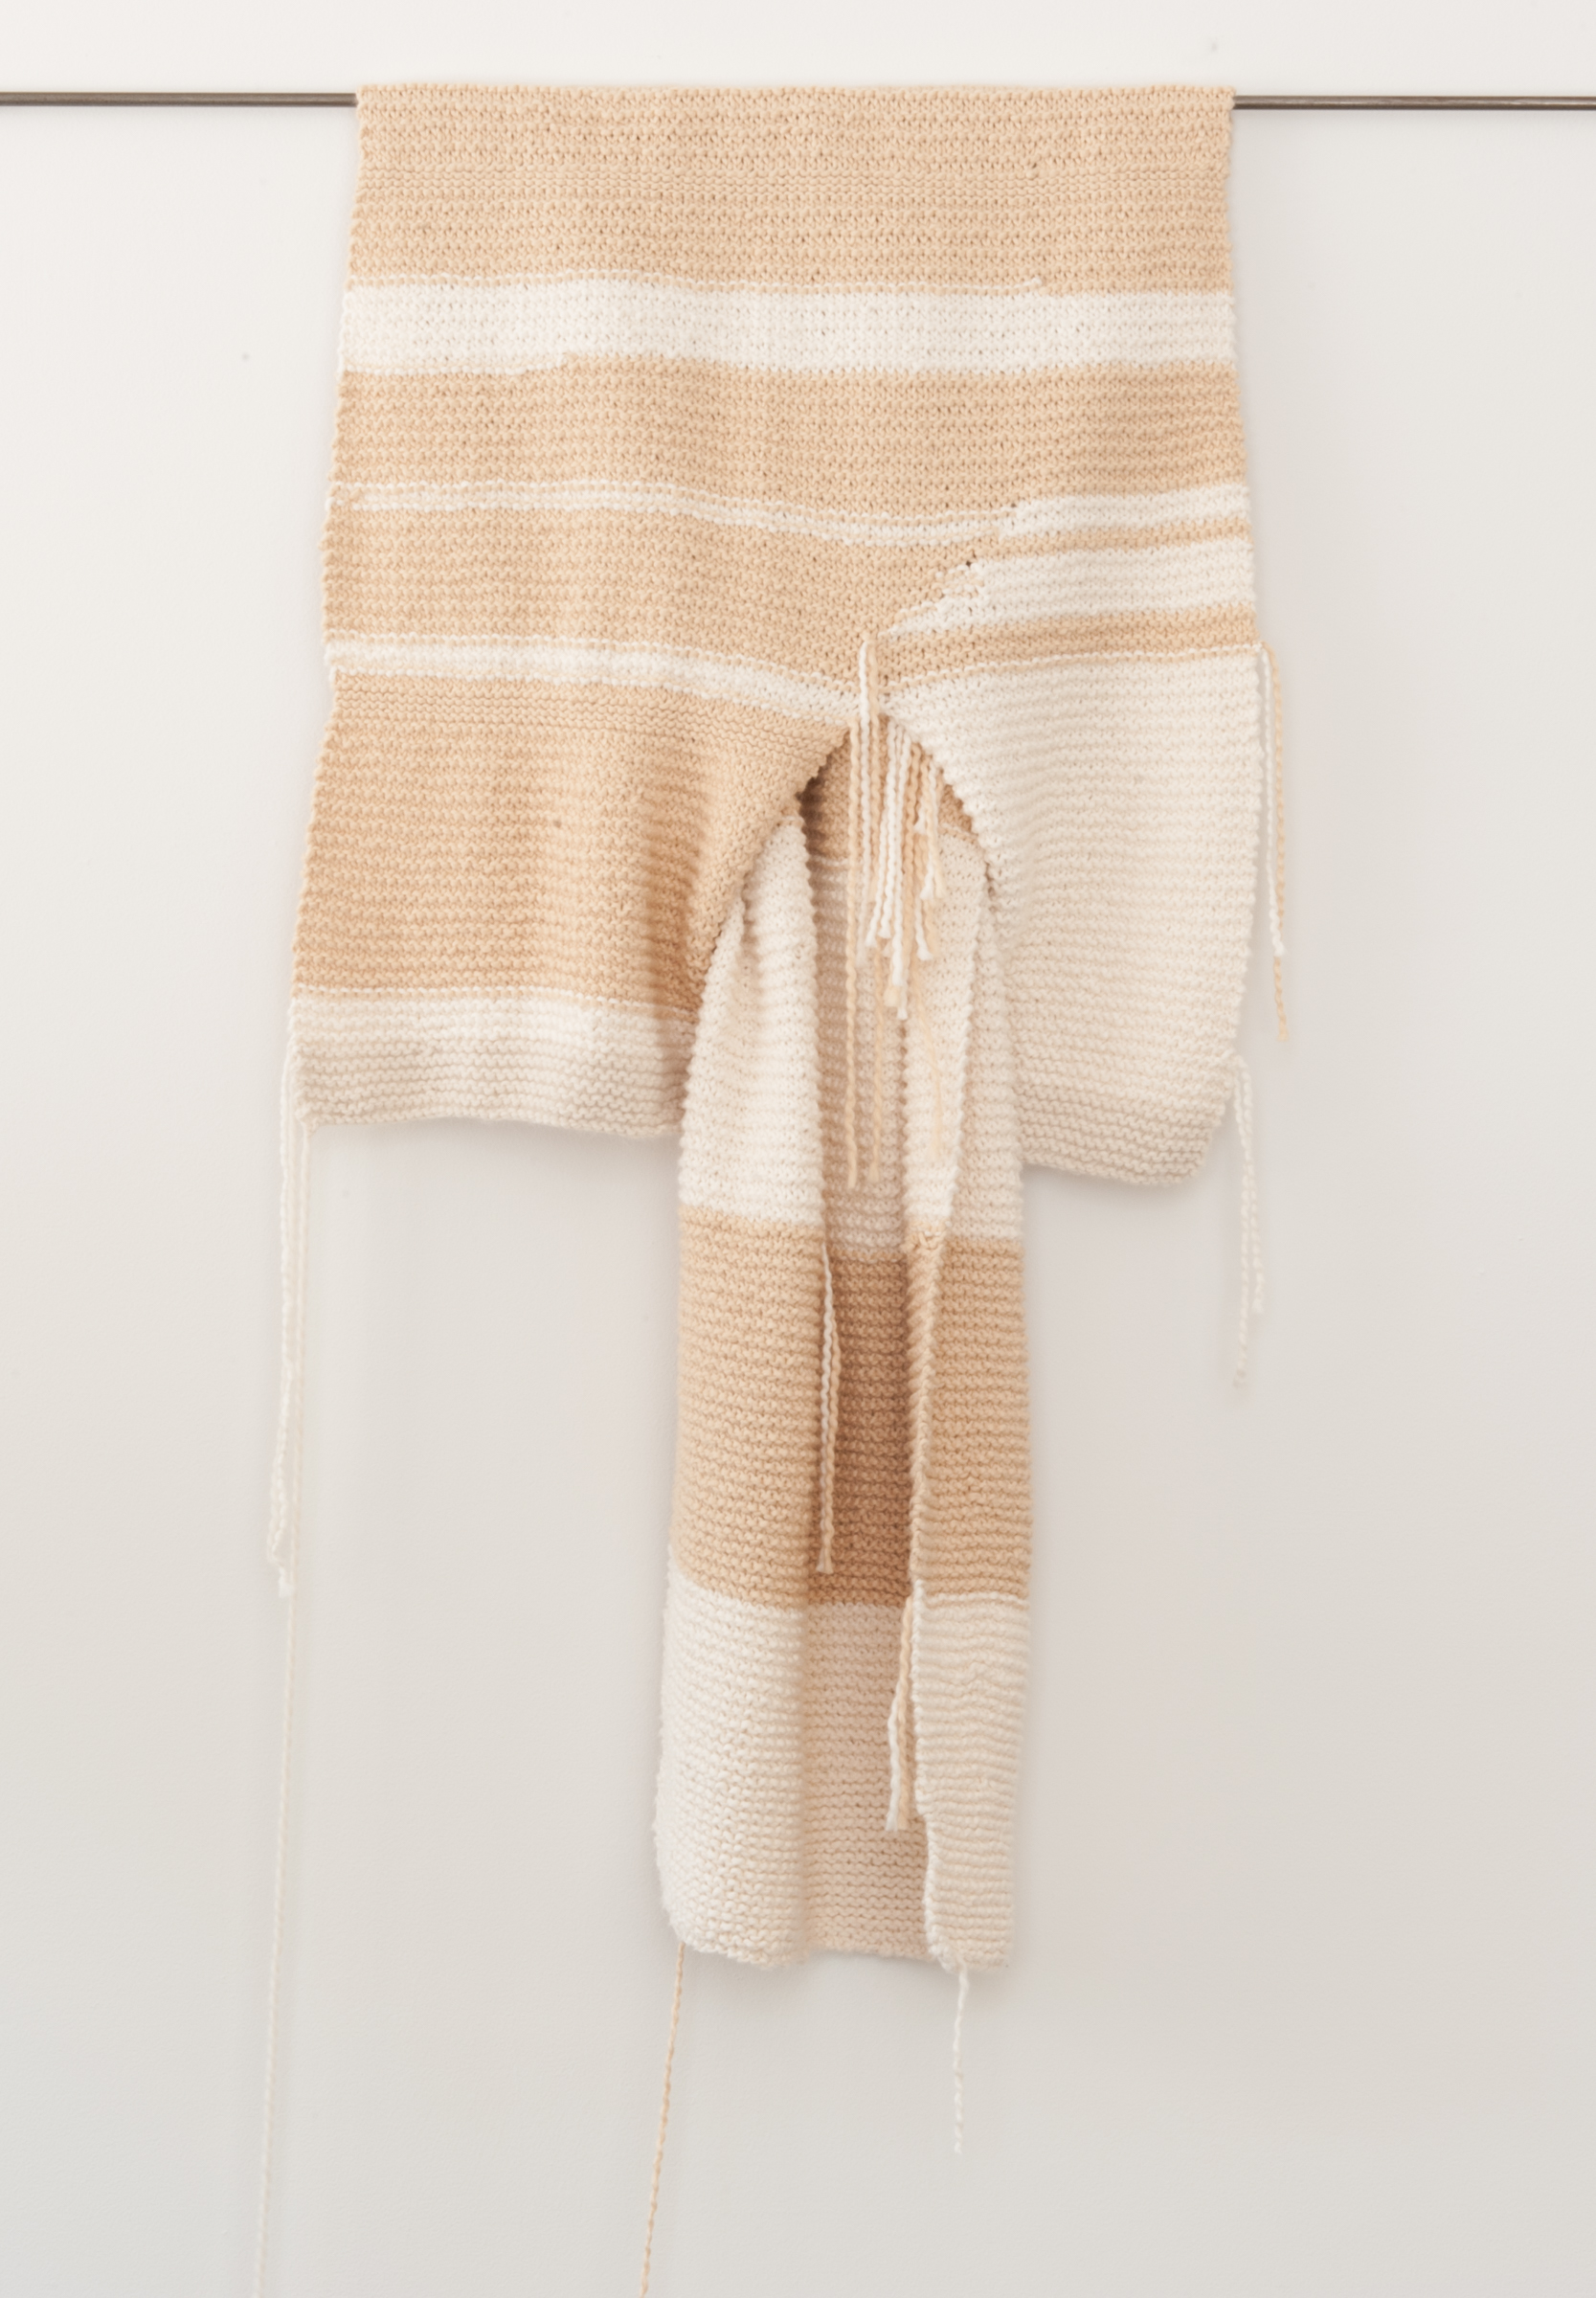 Carol Brady  | 2013  | hand knitted cotton | 50 x 20